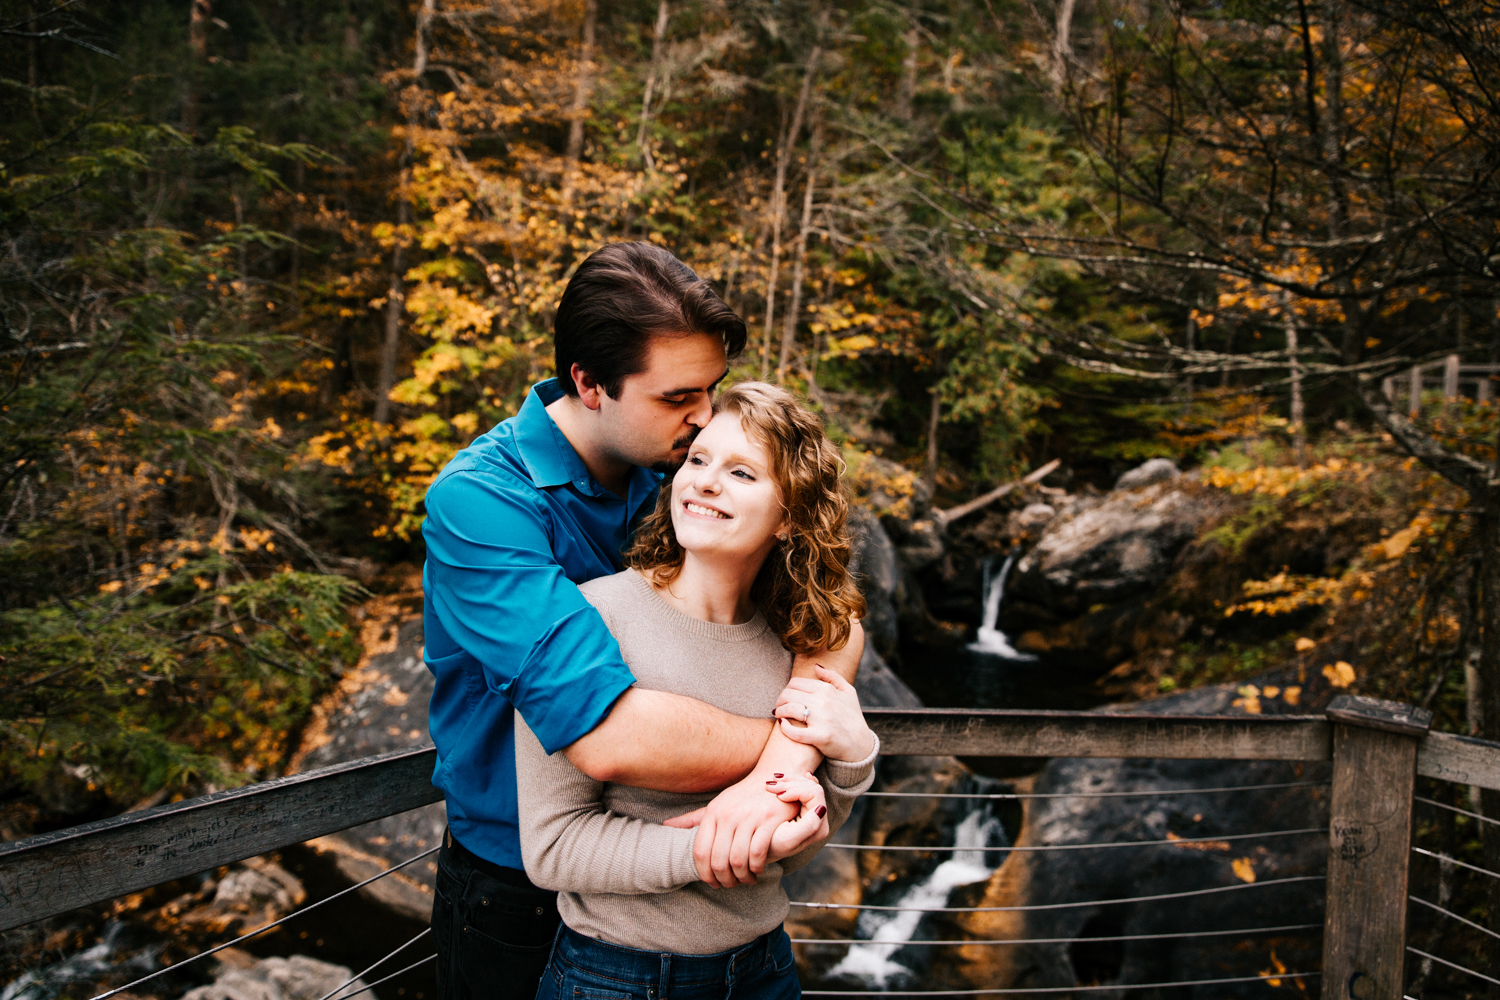 boston-wedding-photographer-new-england-fall-engagement-session-kent-falls-connecticut-ct-ma-ri.jpg